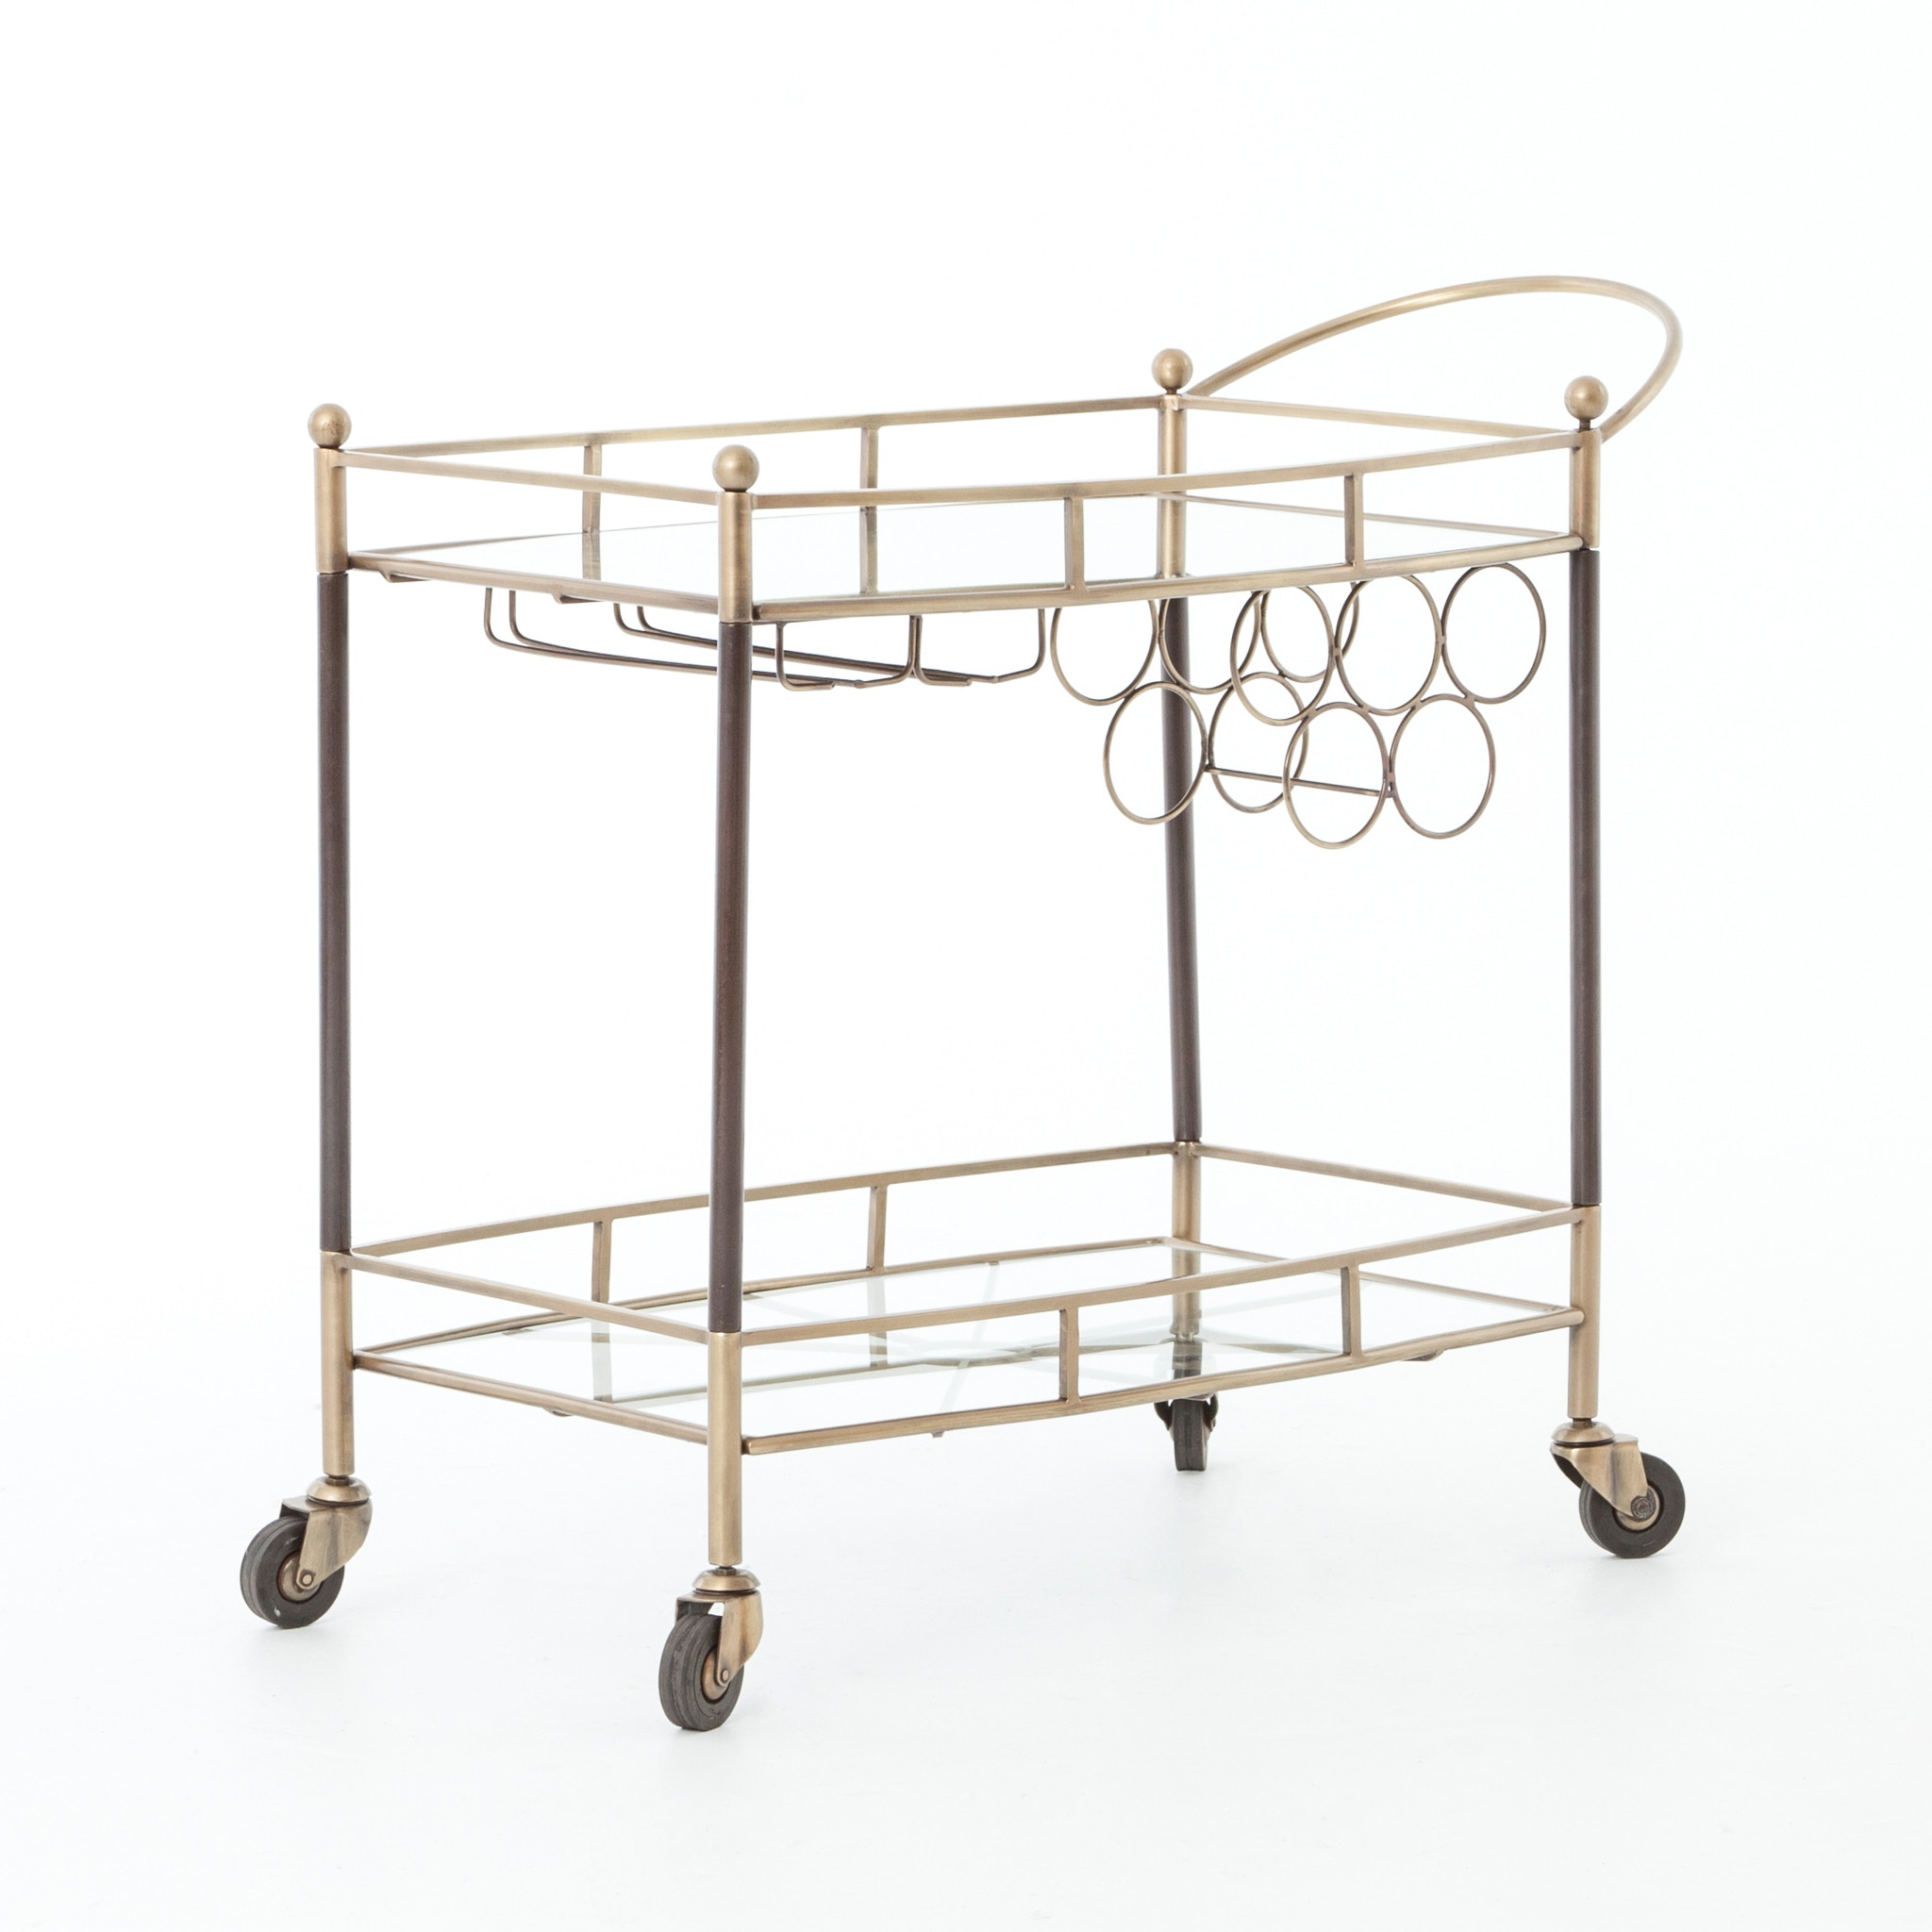 Merveilleux Four Hands Furniture Coles Bar Cart Antique Brass IASR 004KD